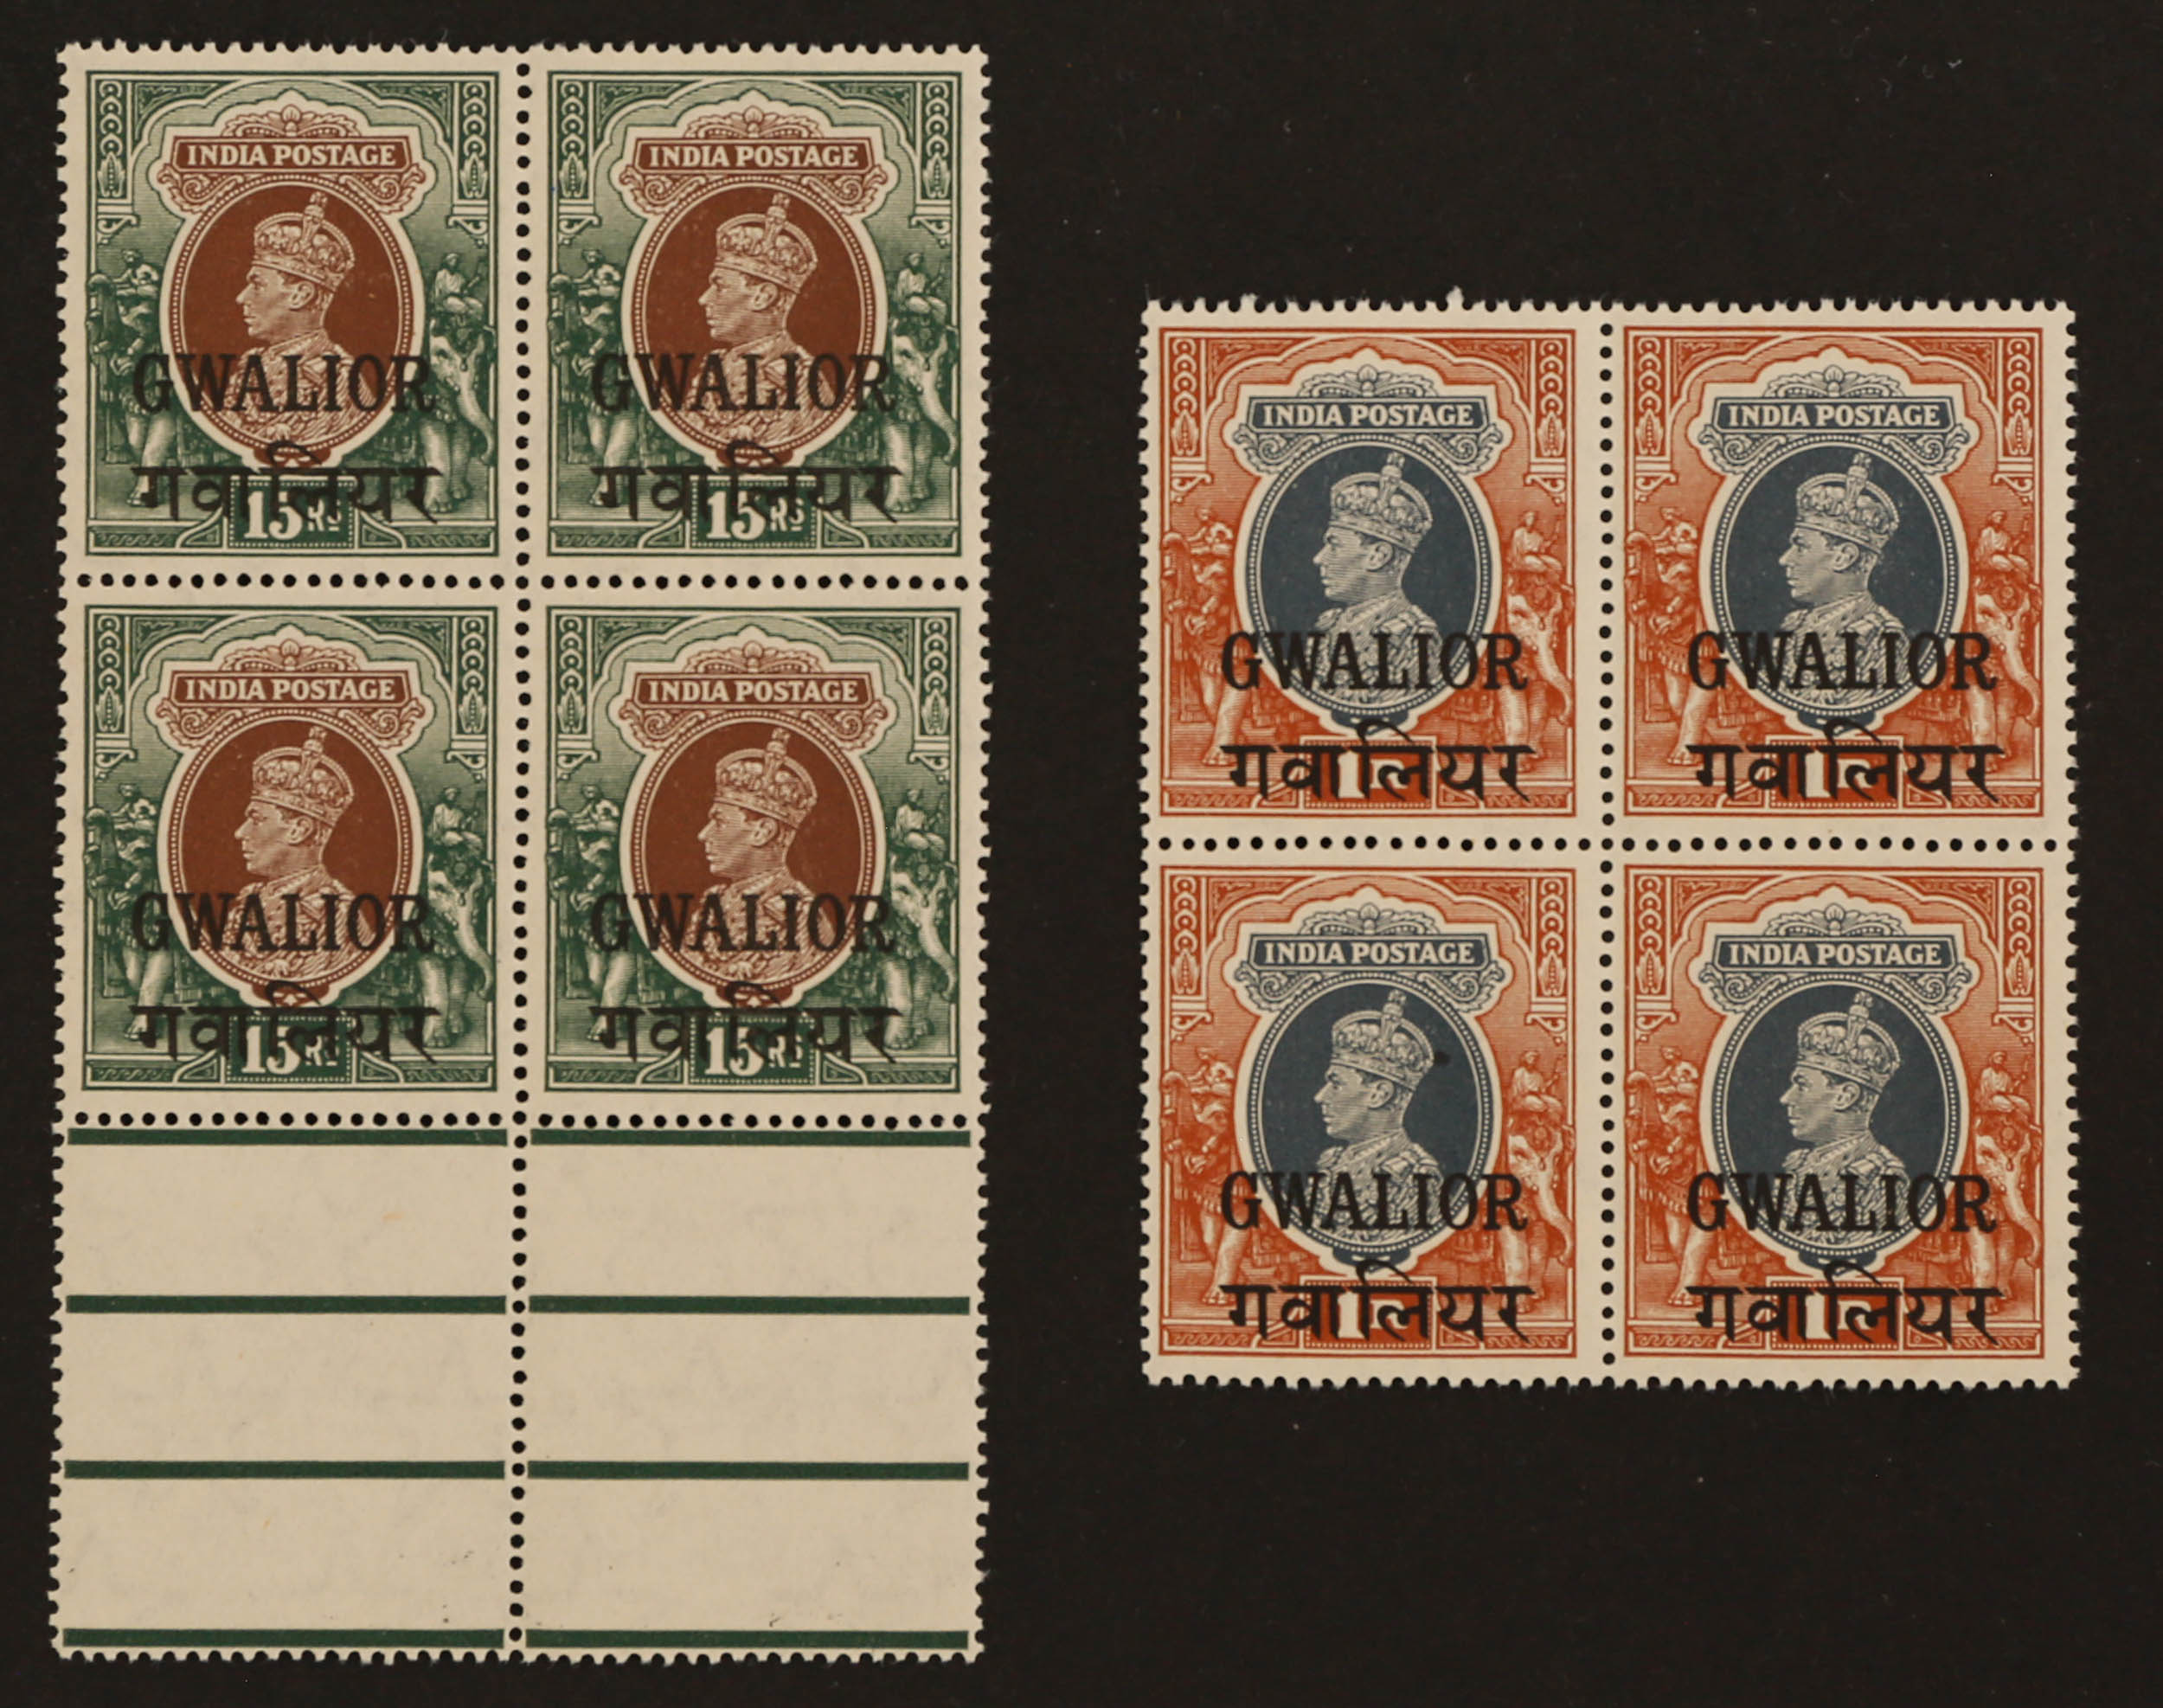 India 48 GWALIOR 1r. grey and red-brown and 15r. brown and green optd with type T 5 in blocks of four UM SG112 and 116